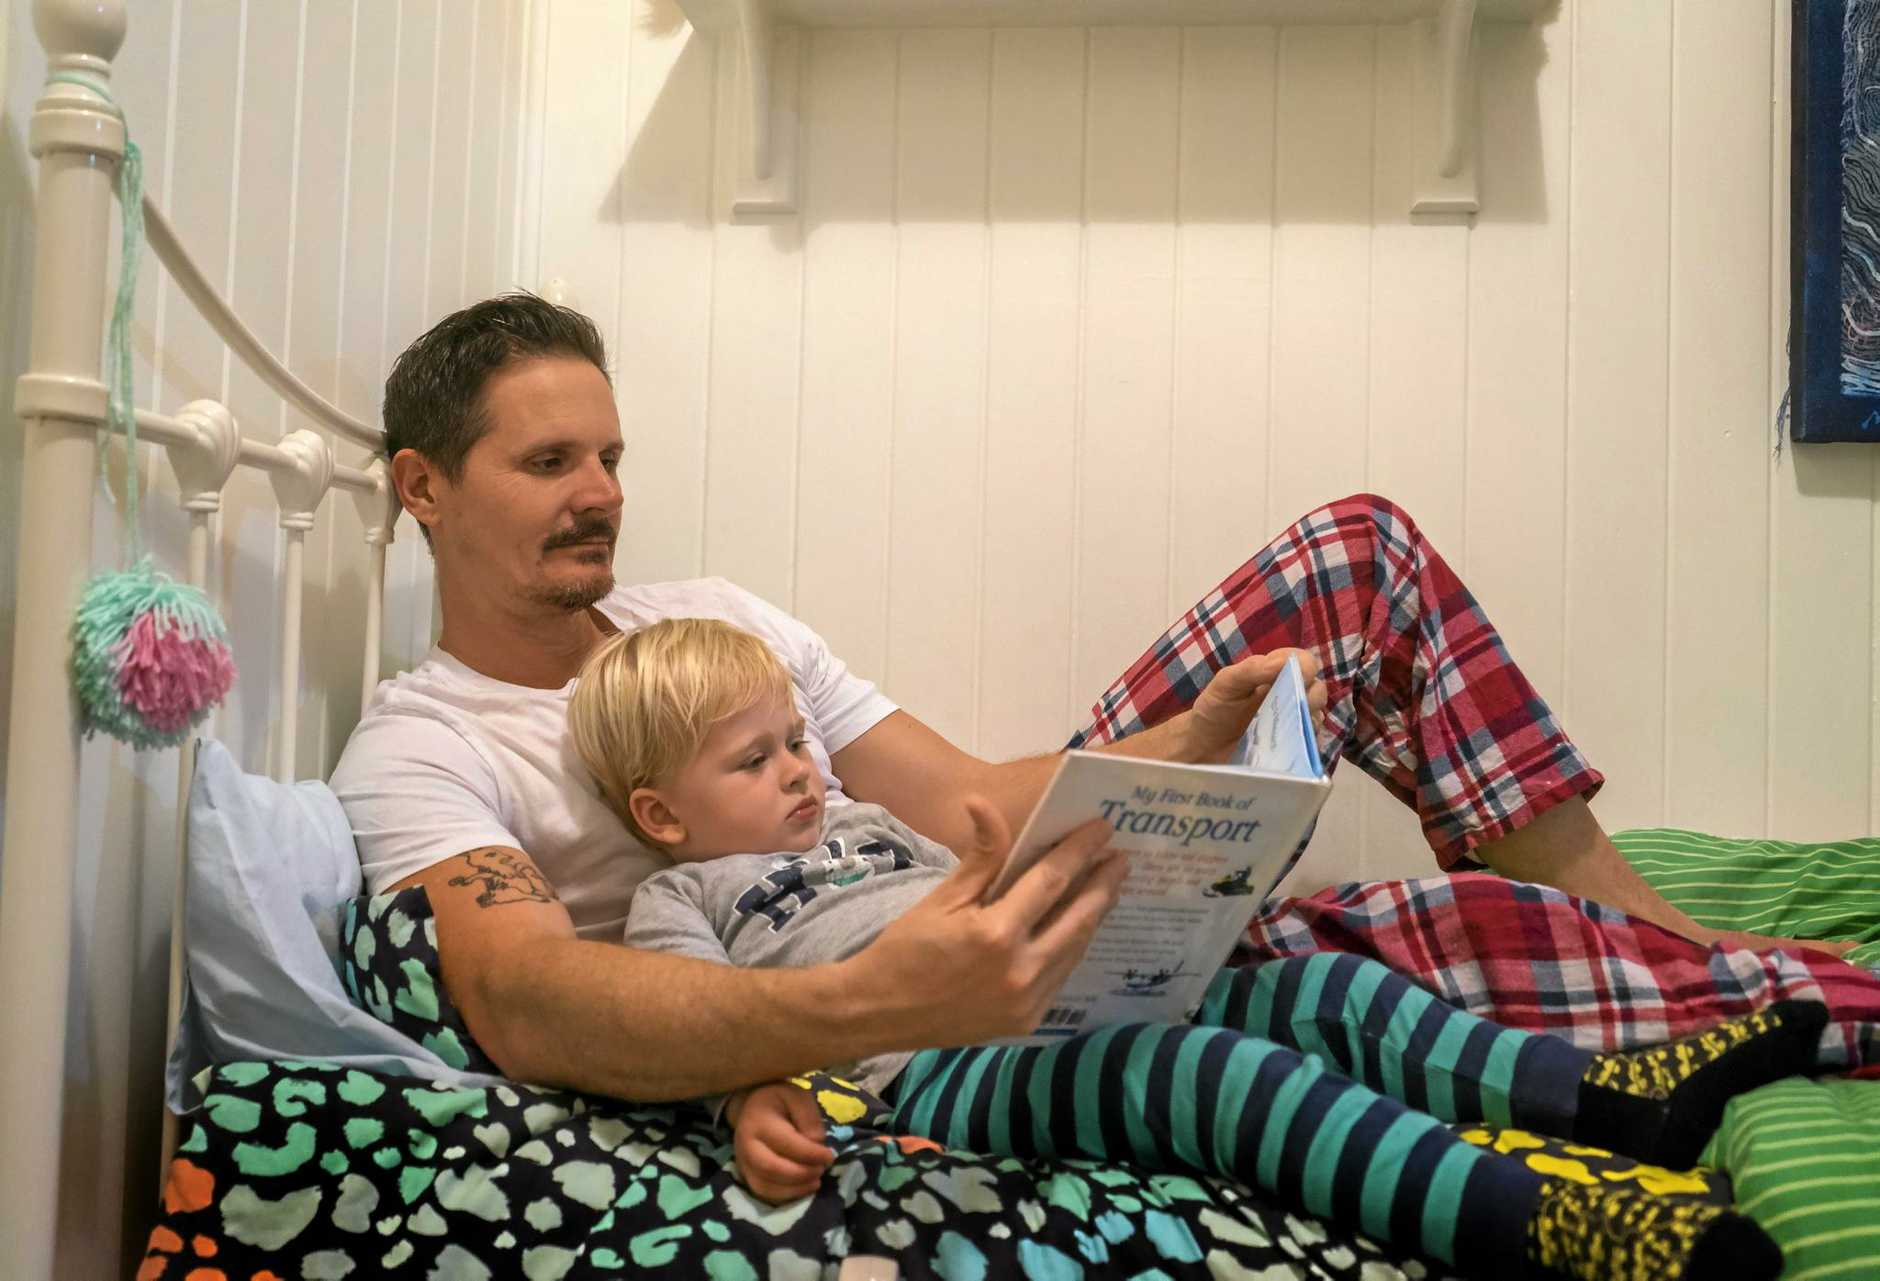 STORY TIME: Dads Read is a national campaign to get the male role model reading to children from birth.